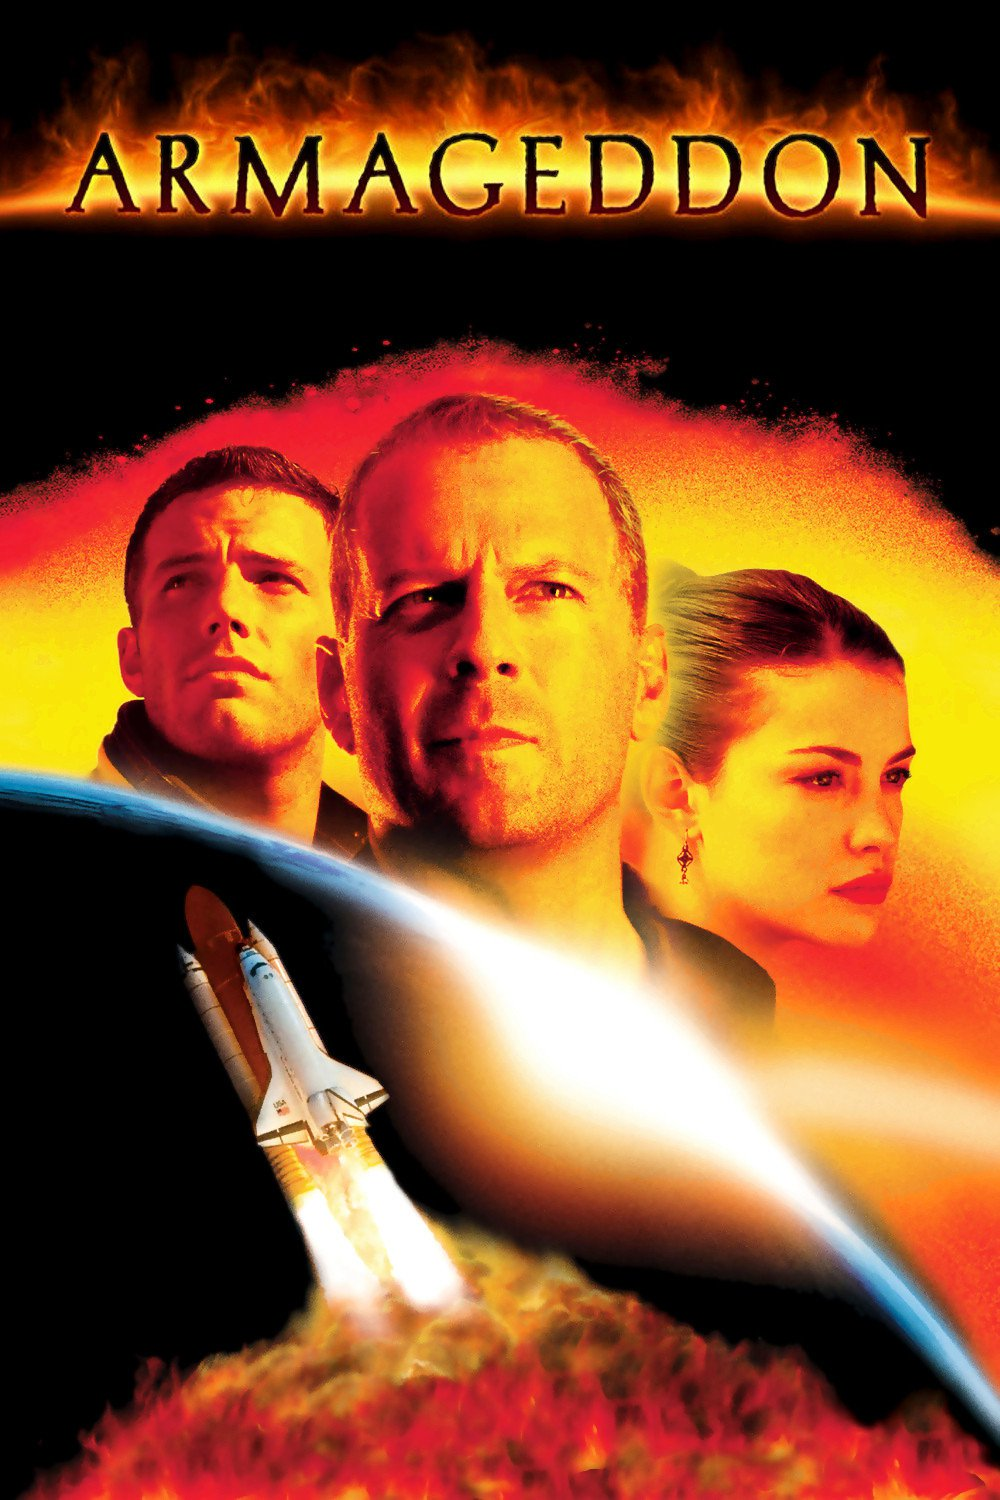 Armageddon follows a group of deep-core drillers sent by NASA to stop a gigantic asteroid on a collision course with Earth. It features an ensemble cast including Bruce Willis, Ben Affleck, Billy Bob Thornton, Liv Tyler, and Owen Wilson.